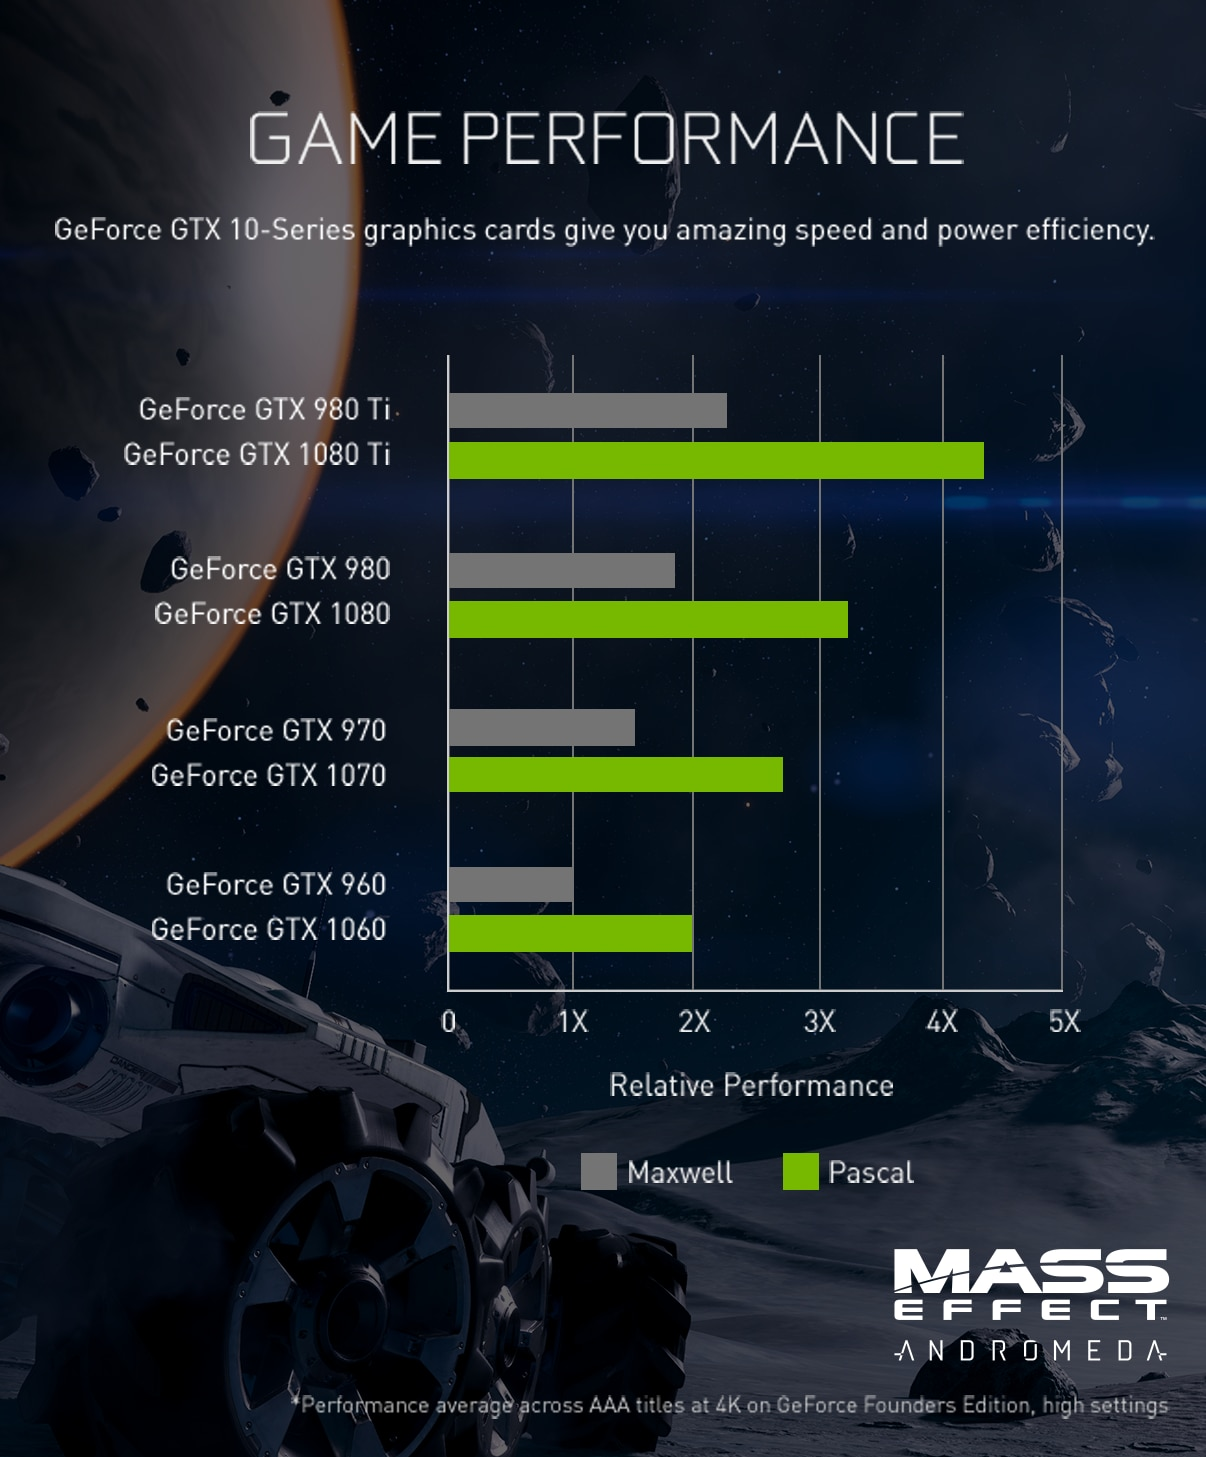 nvidia_gaming_performance_ANZ